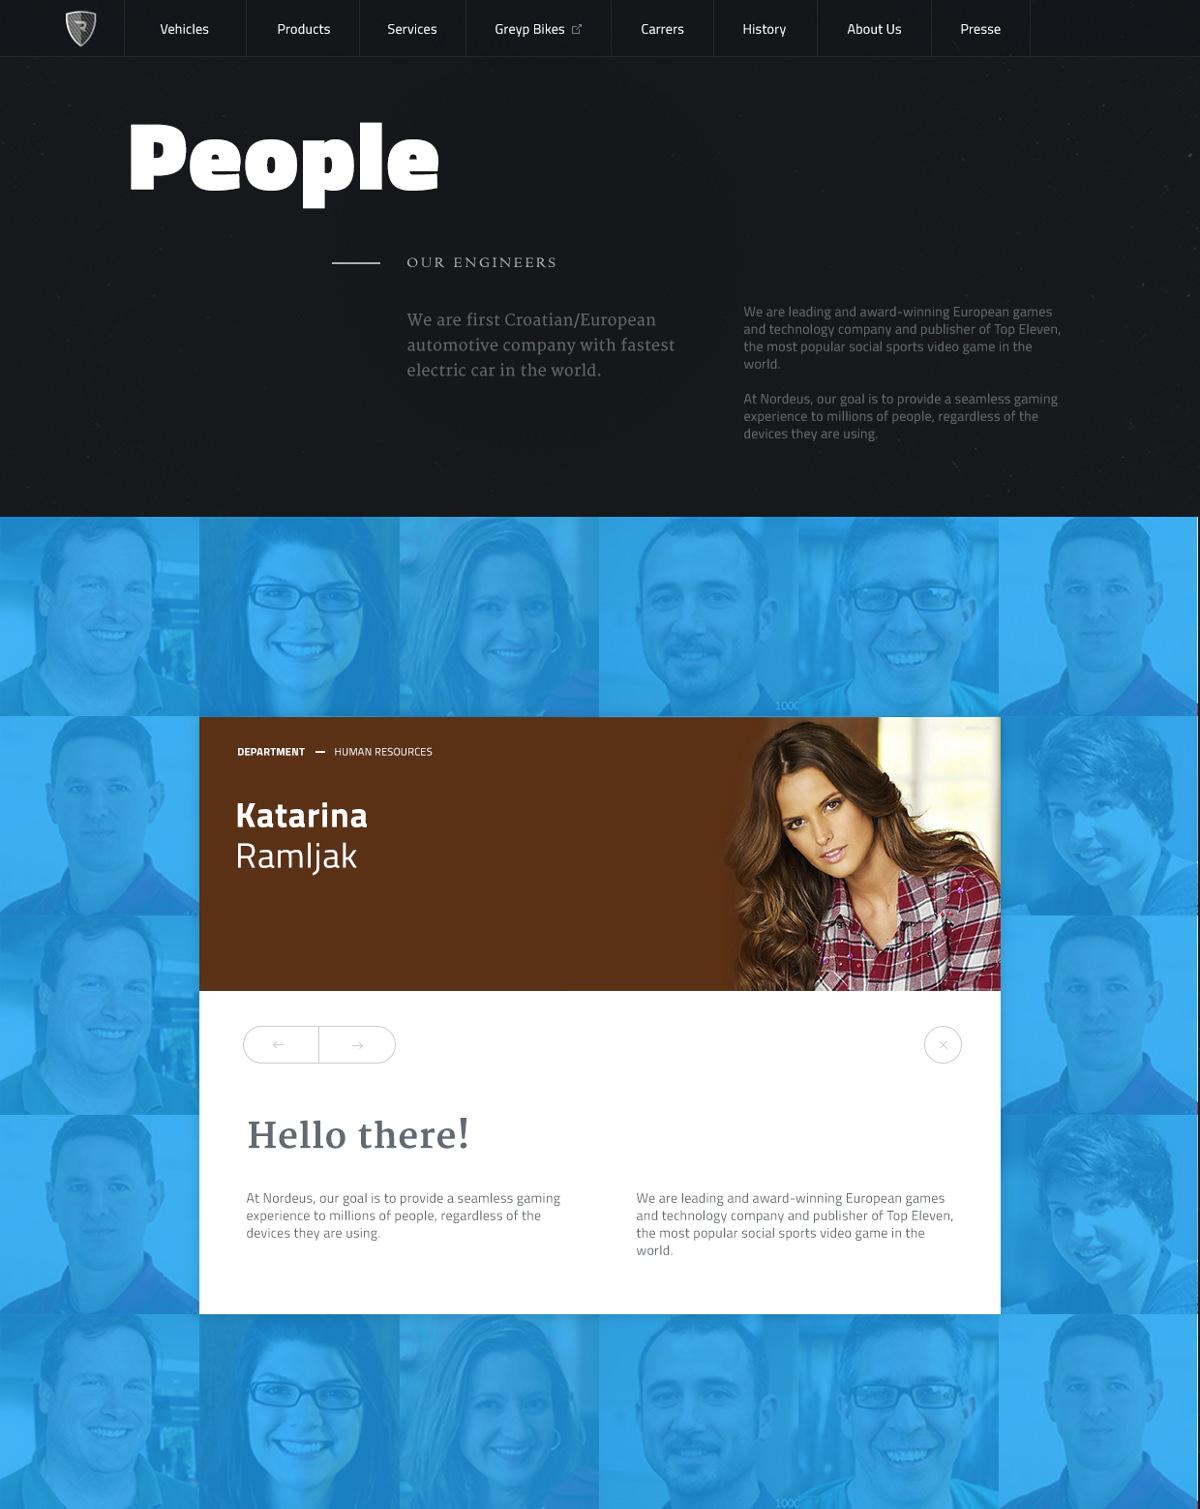 Website redesign case study: About page example